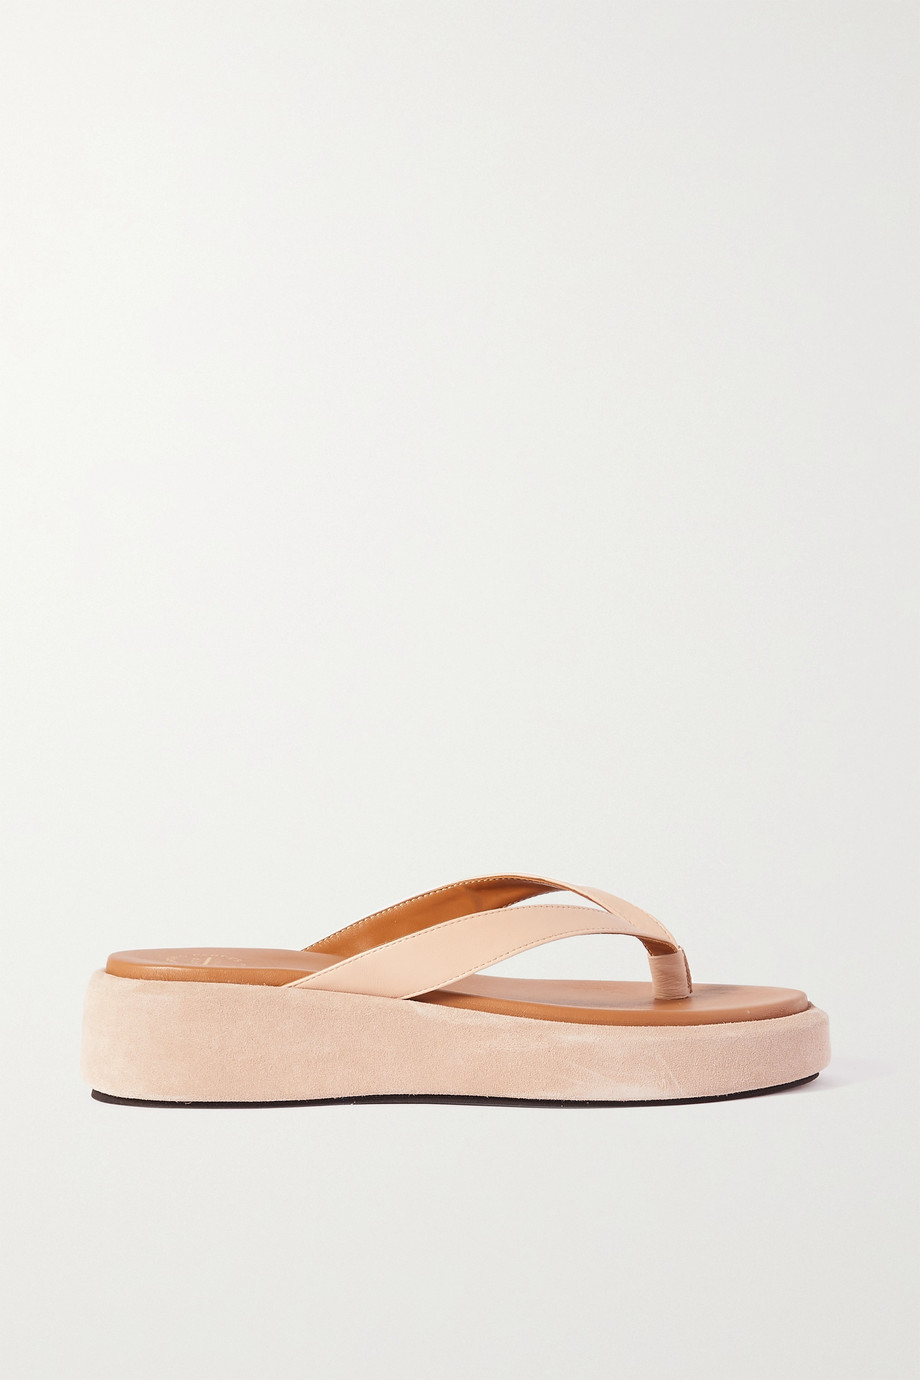 ATP Atelier Roseo leather and suede platform sandals